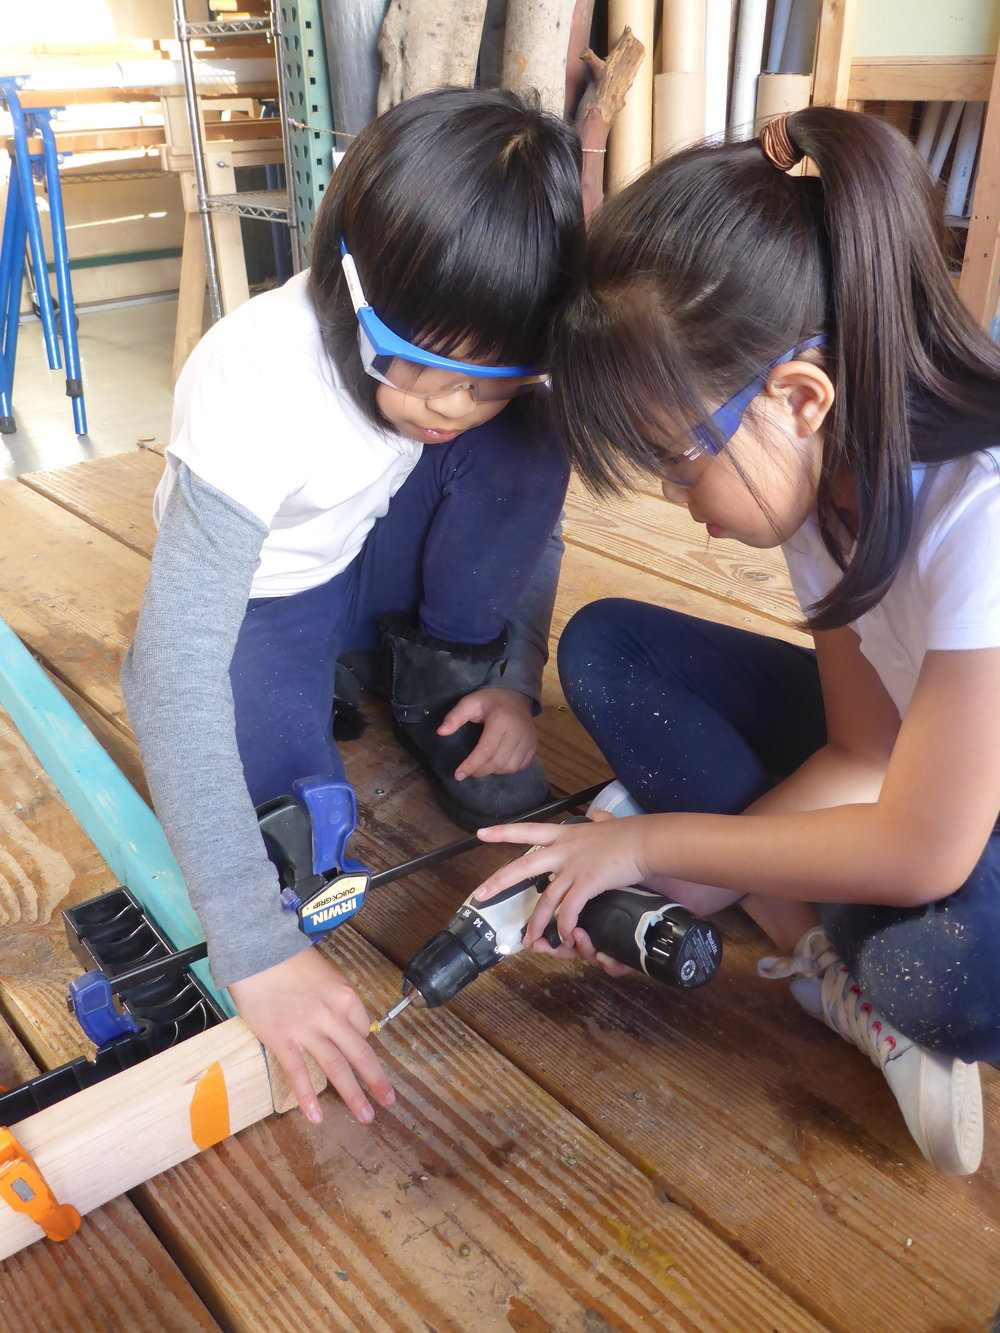 Amanda and Annie worked on constructing the frame for the second rocket. Such amazing teamwork!